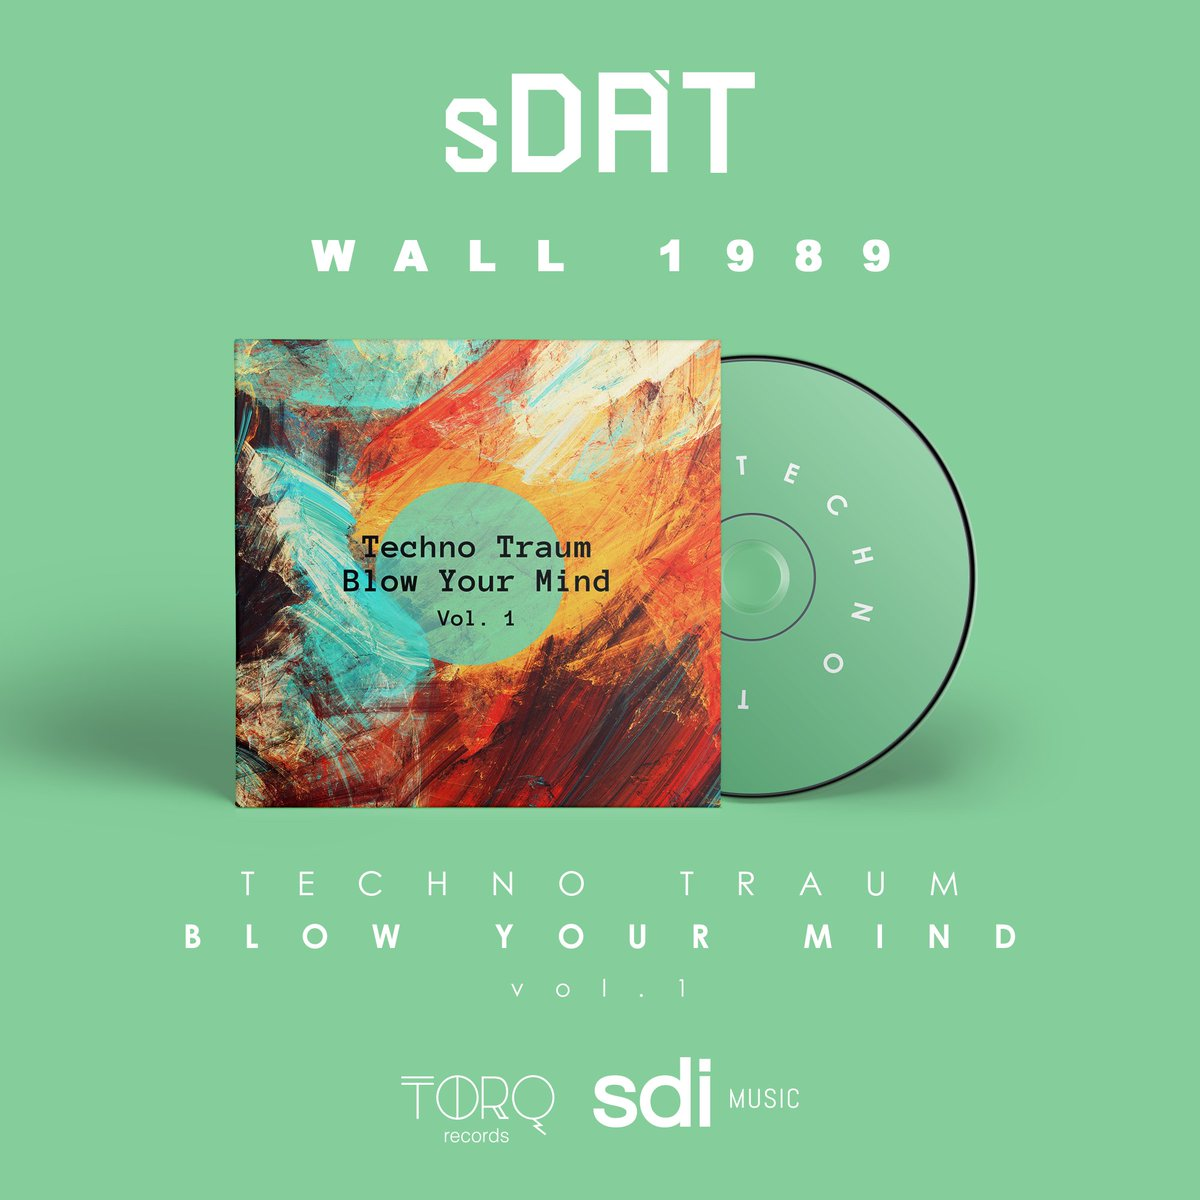 Wall 1989 by Sdat, is on the Techno Traum Blow Your Mind Compilation and the genre of the track is techno.  #techno #berlin #deutschland #berlinwall #berlinmusic #technomusic #night #life #recordlabel #subculture #track #newtrack #wave #street #electro #electroclashpic.twitter.com/zn9FBS2Zk4